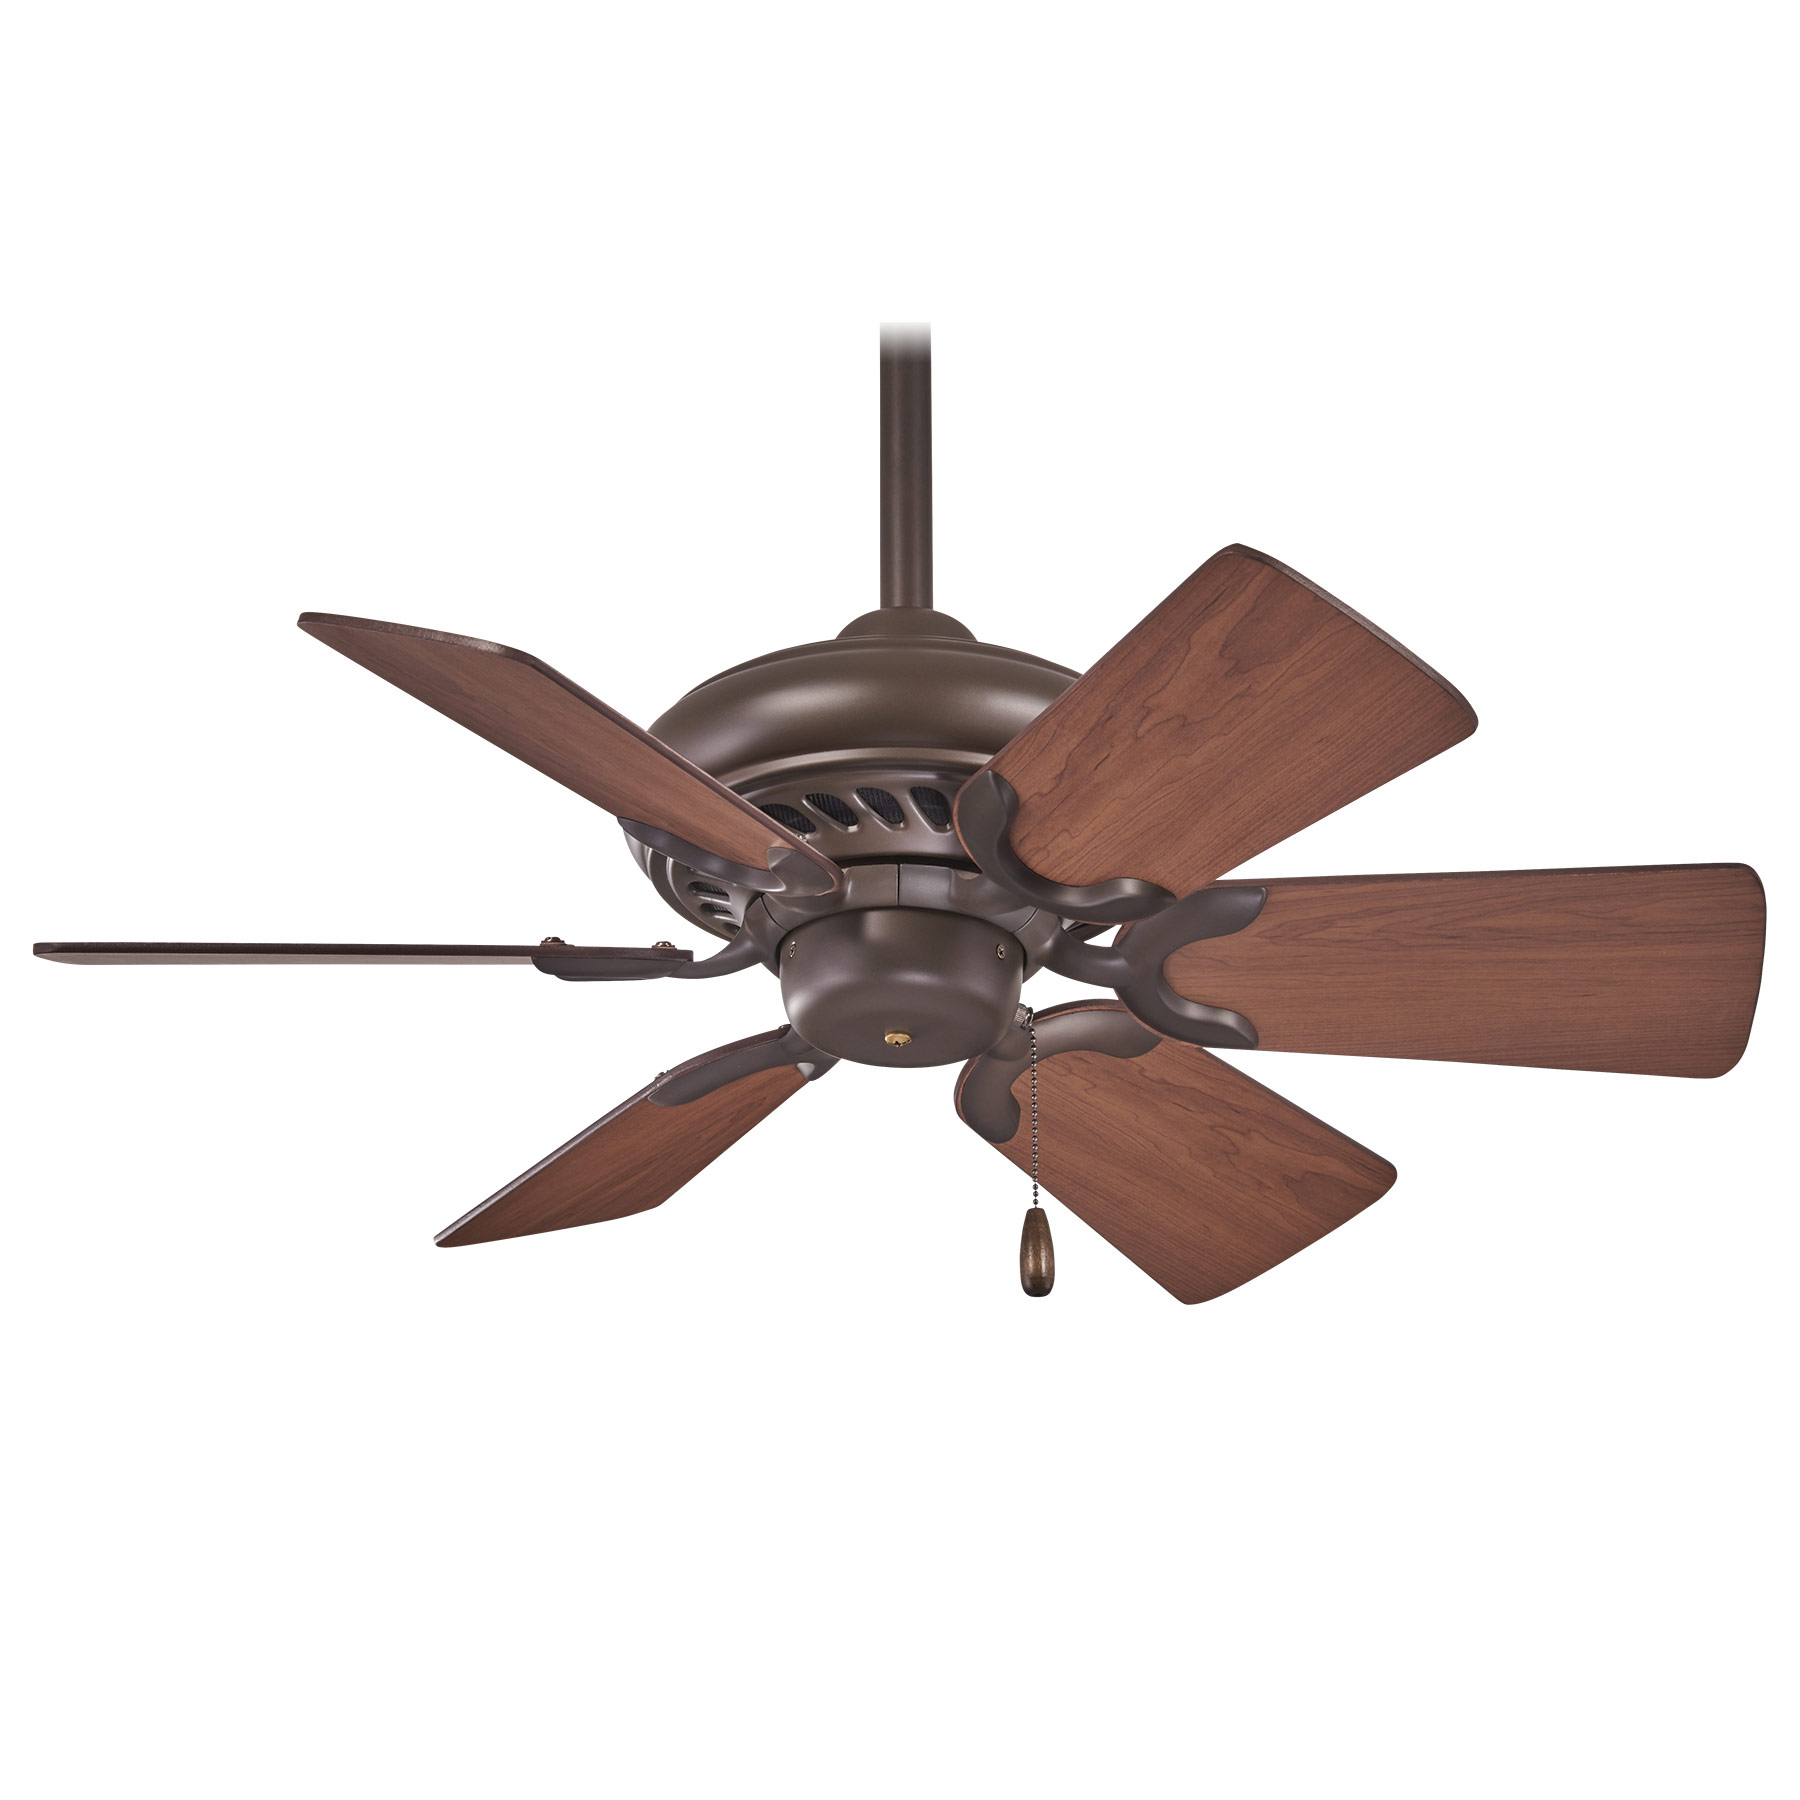 Supra 32 Inch Ceiling Fan By Minka Aire